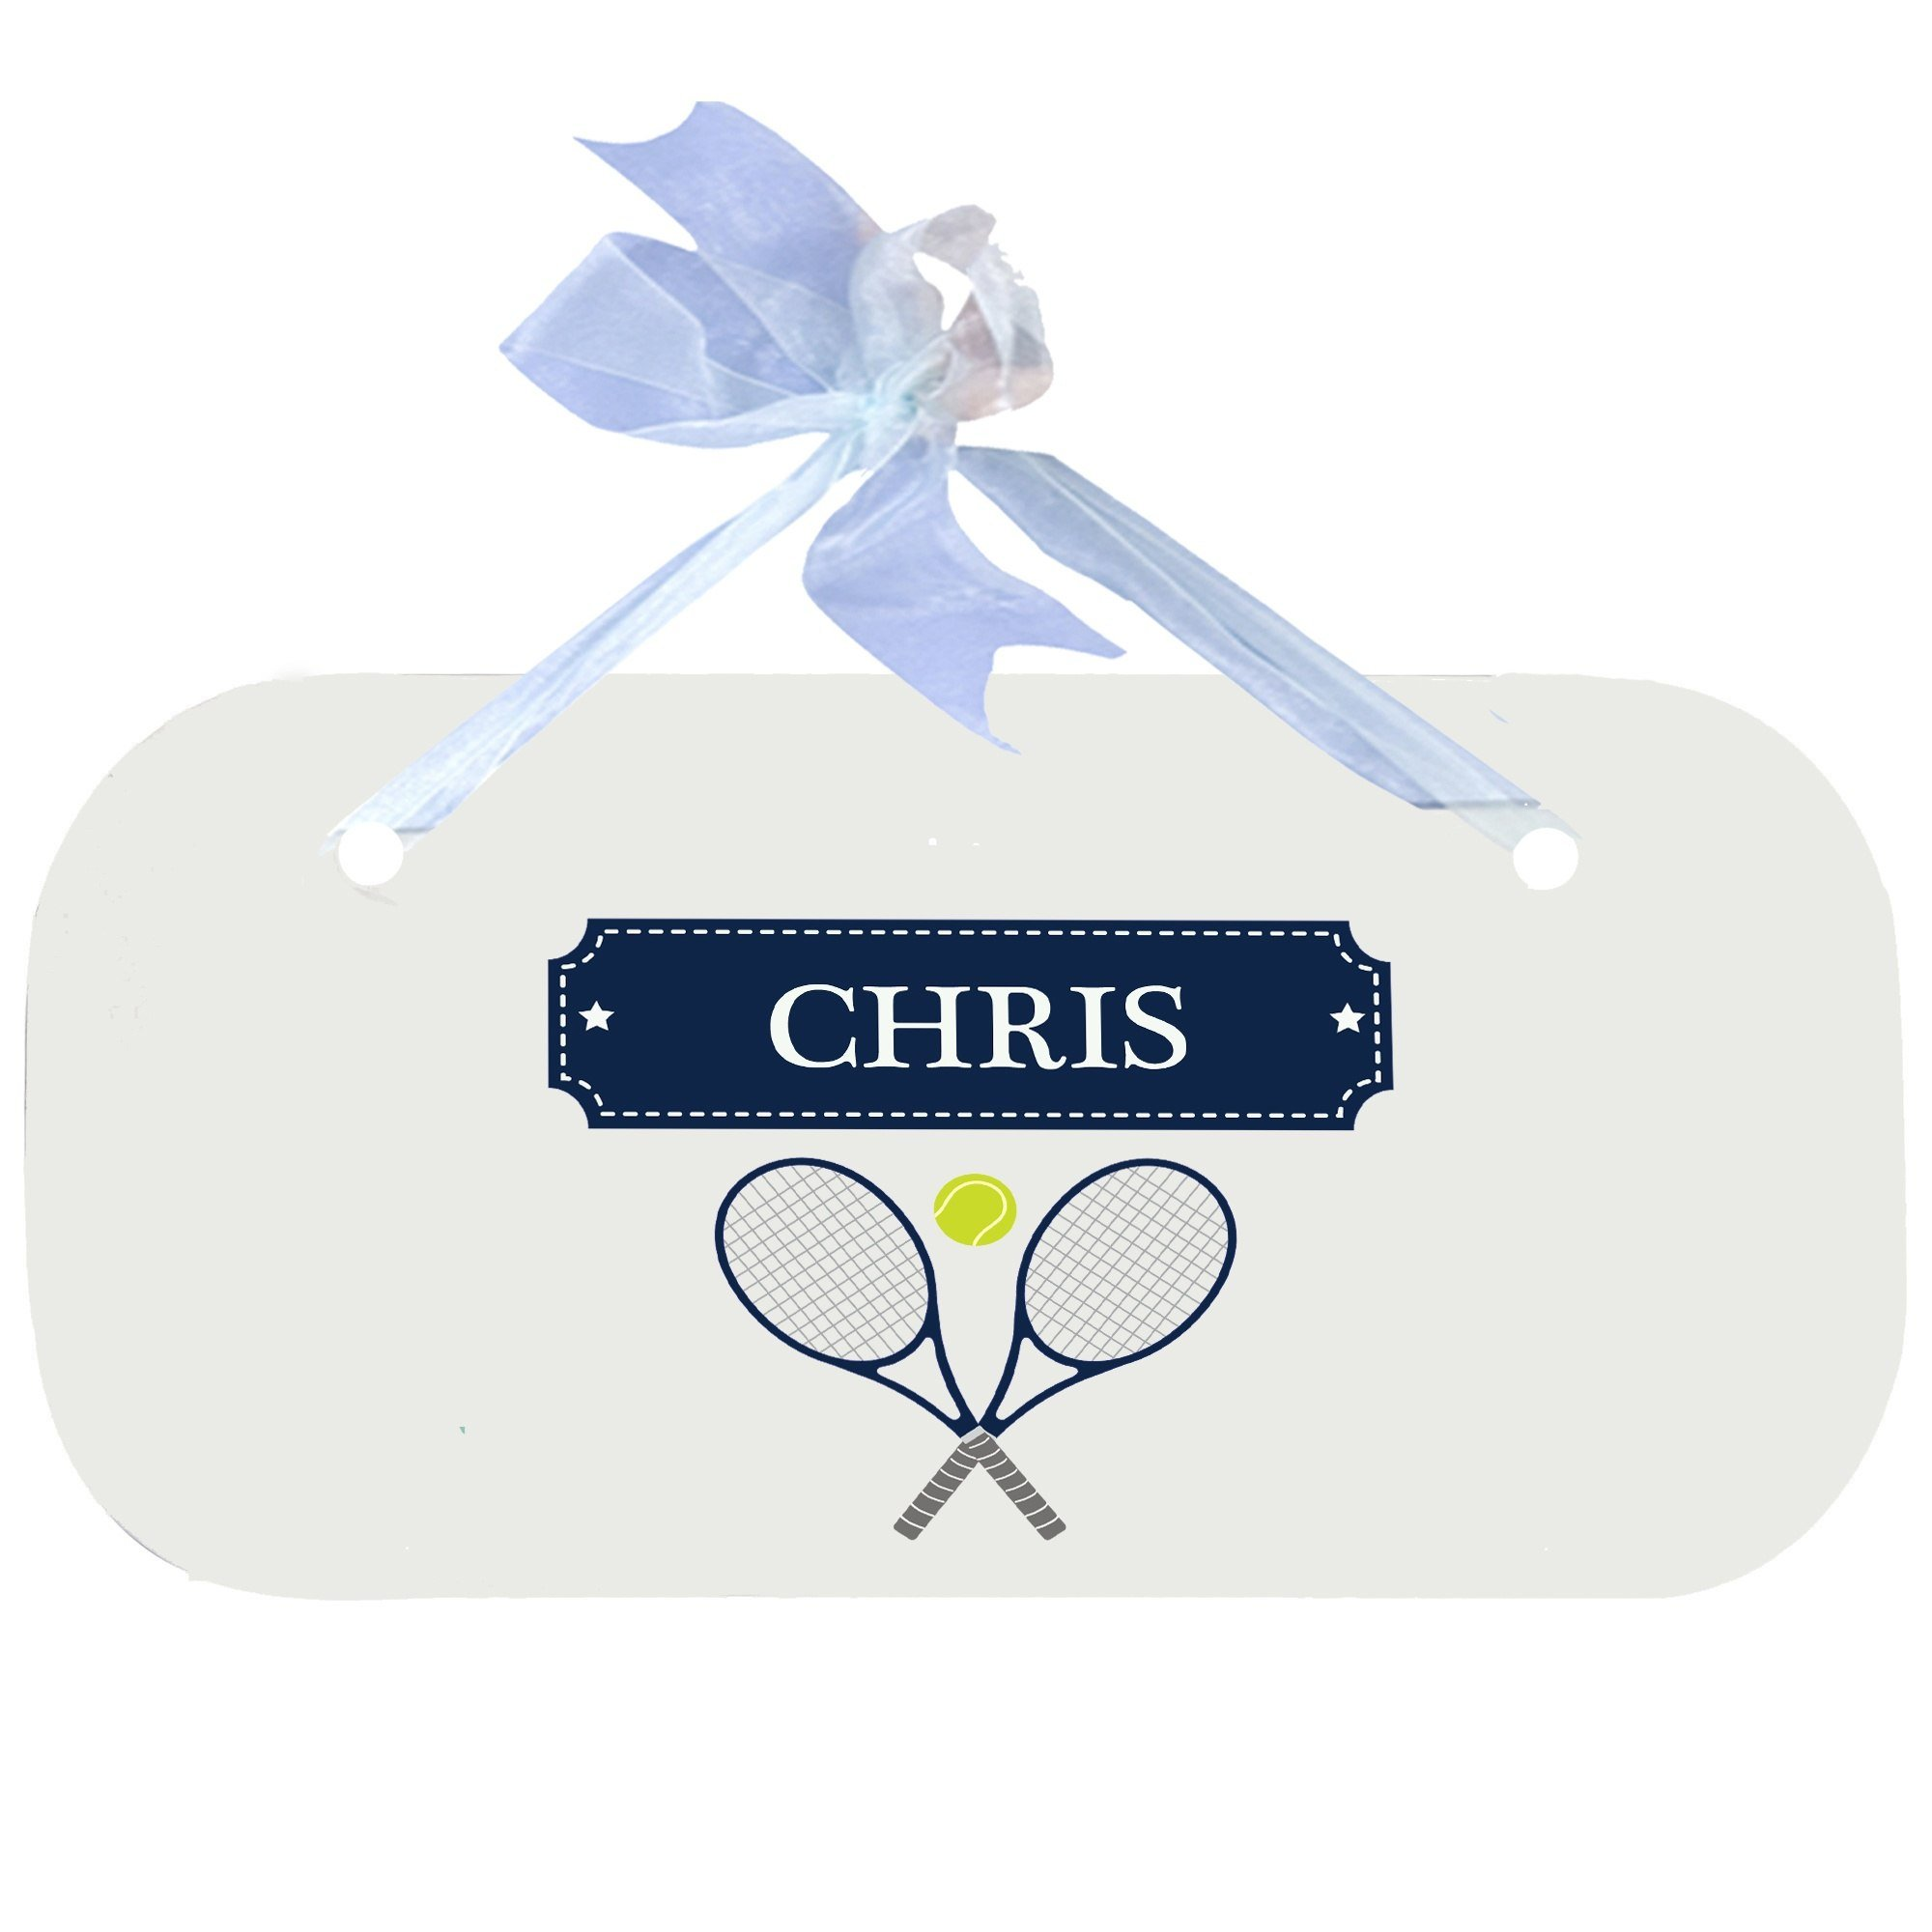 Personalized Tennis Wooden Door Hanger With Blue Ribbon by MyBambino (Image #1)